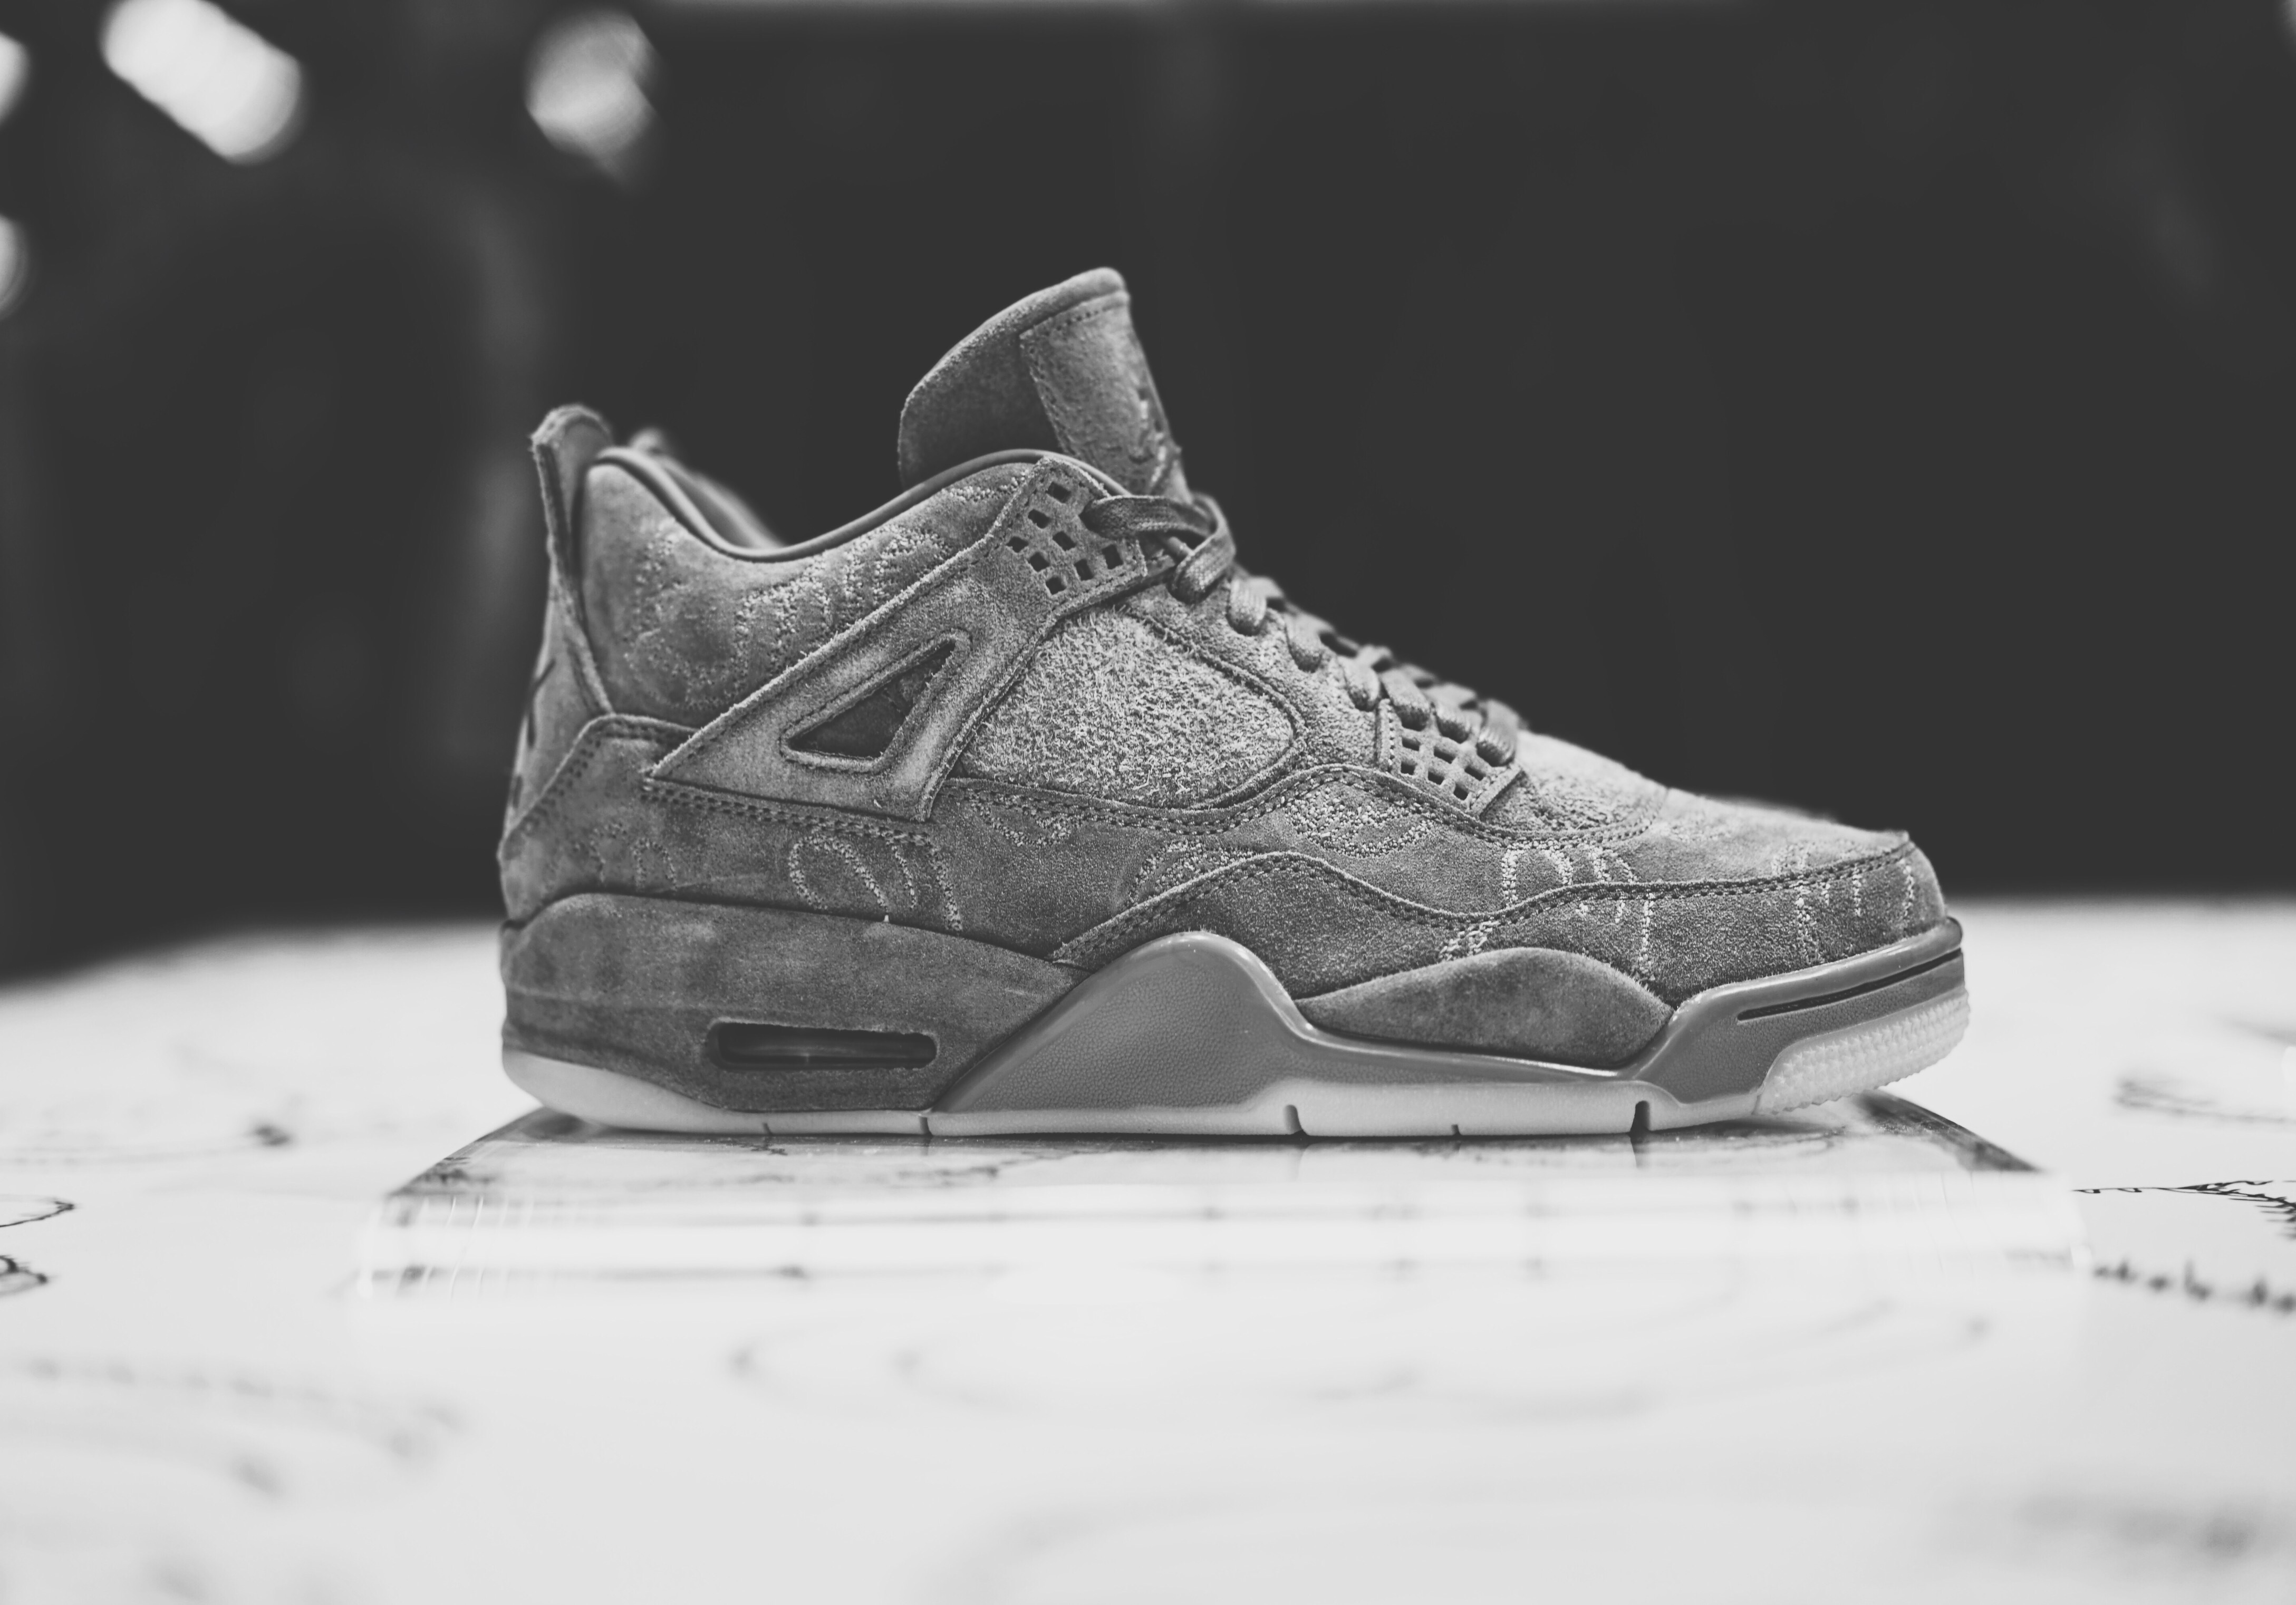 reputable site a1d85 7b200 The Kaws x Air Jordan 4 Will Release Online - WearTesters